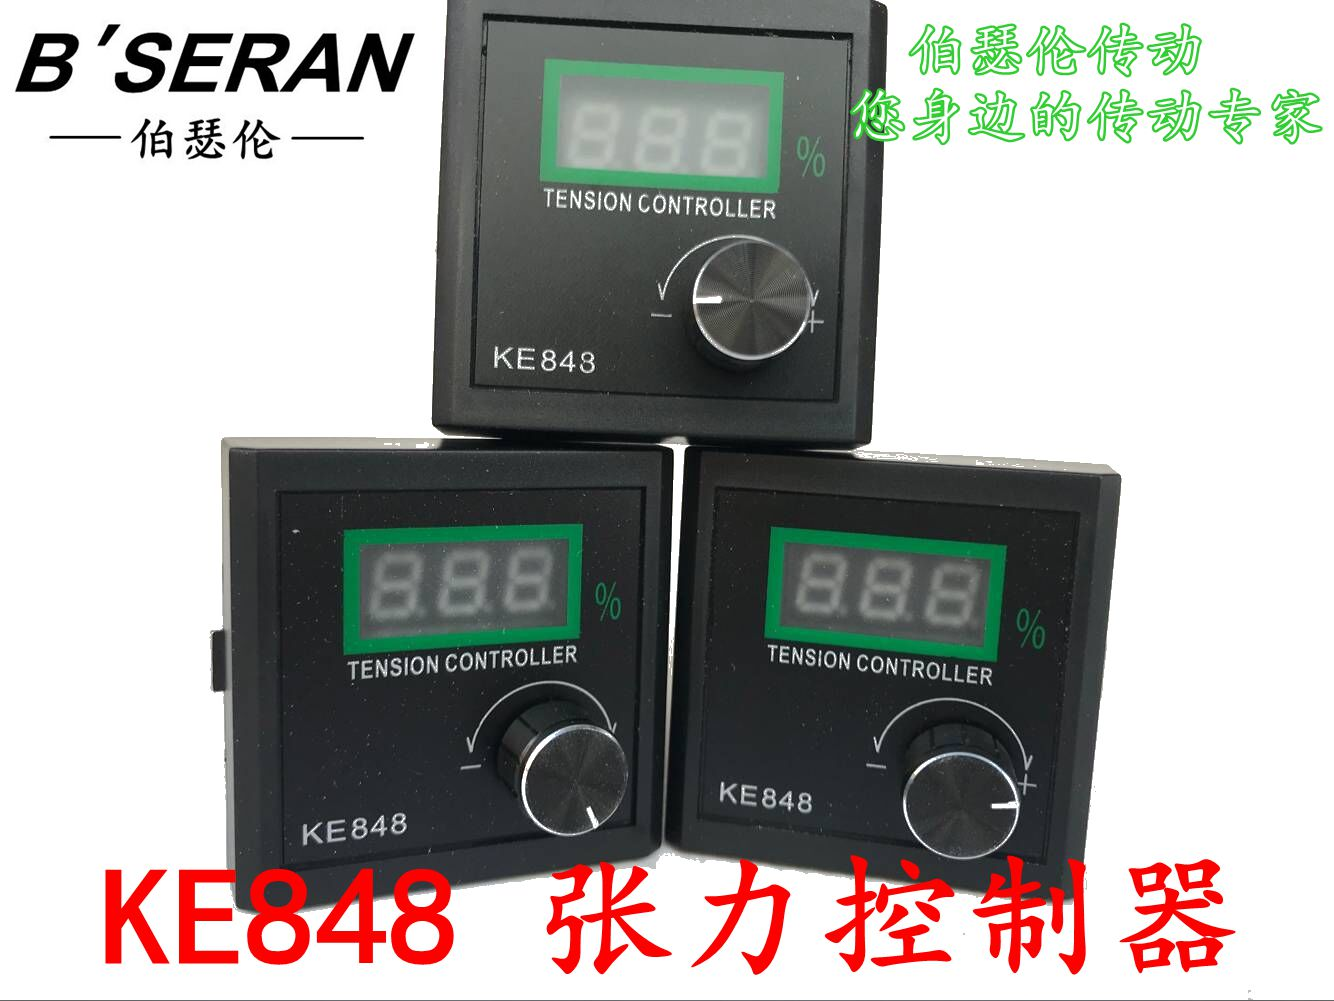 Manual Tension Controller DC24V Magnetic Powder Tension Controller KE848 Tension Controller